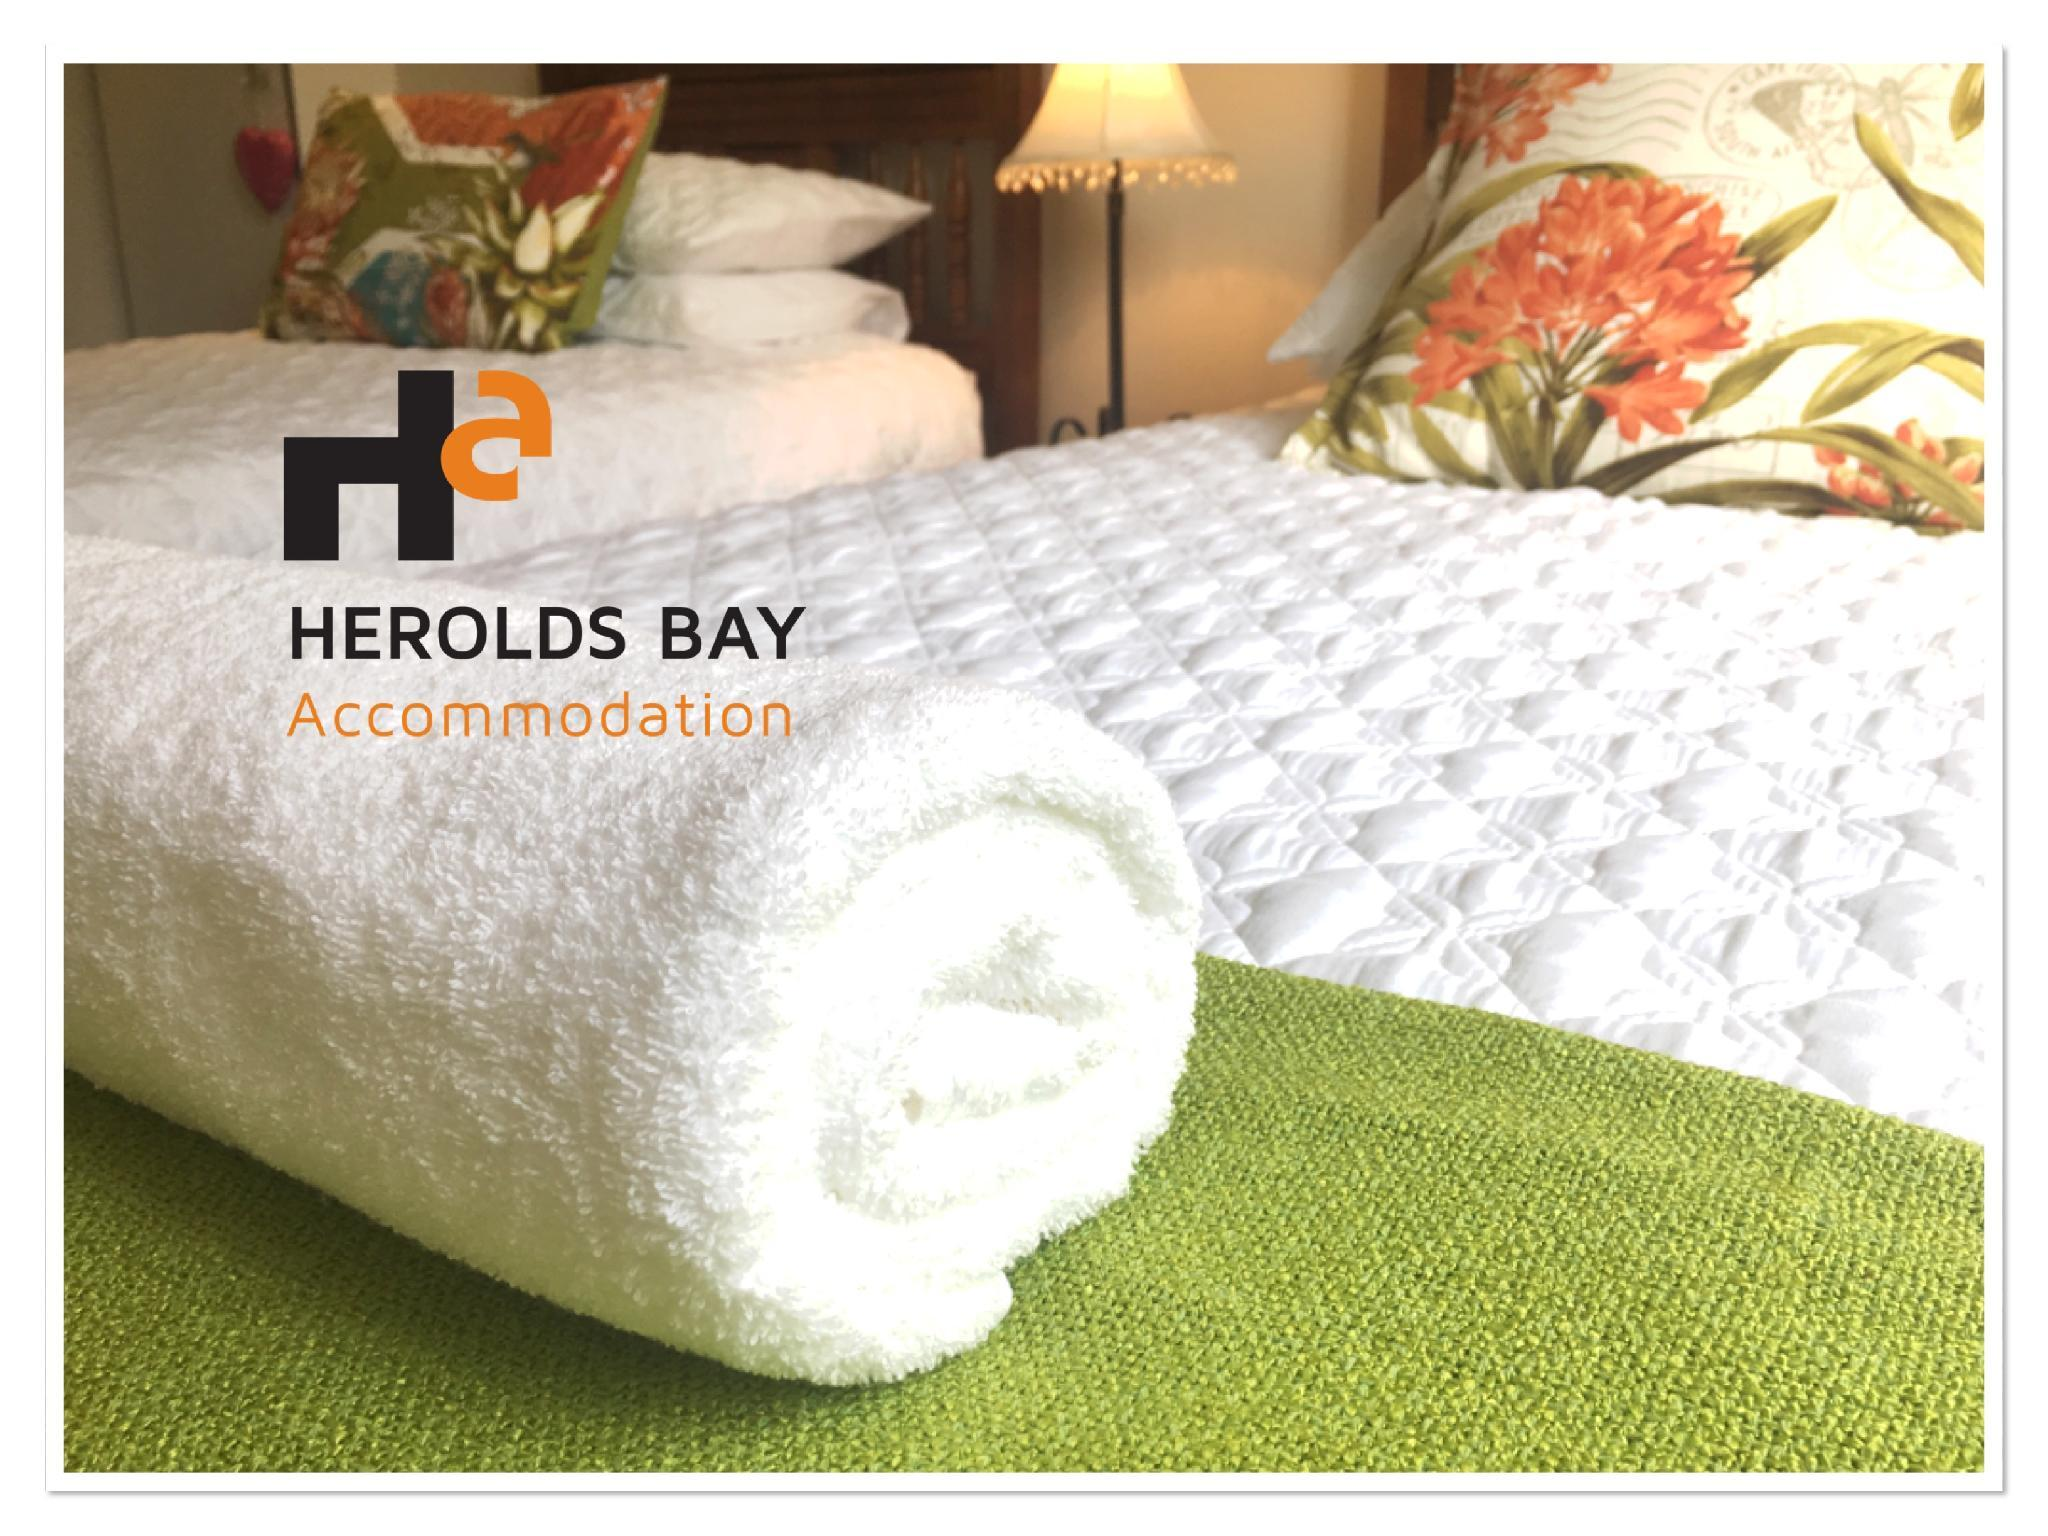 The Herolds Bay 601